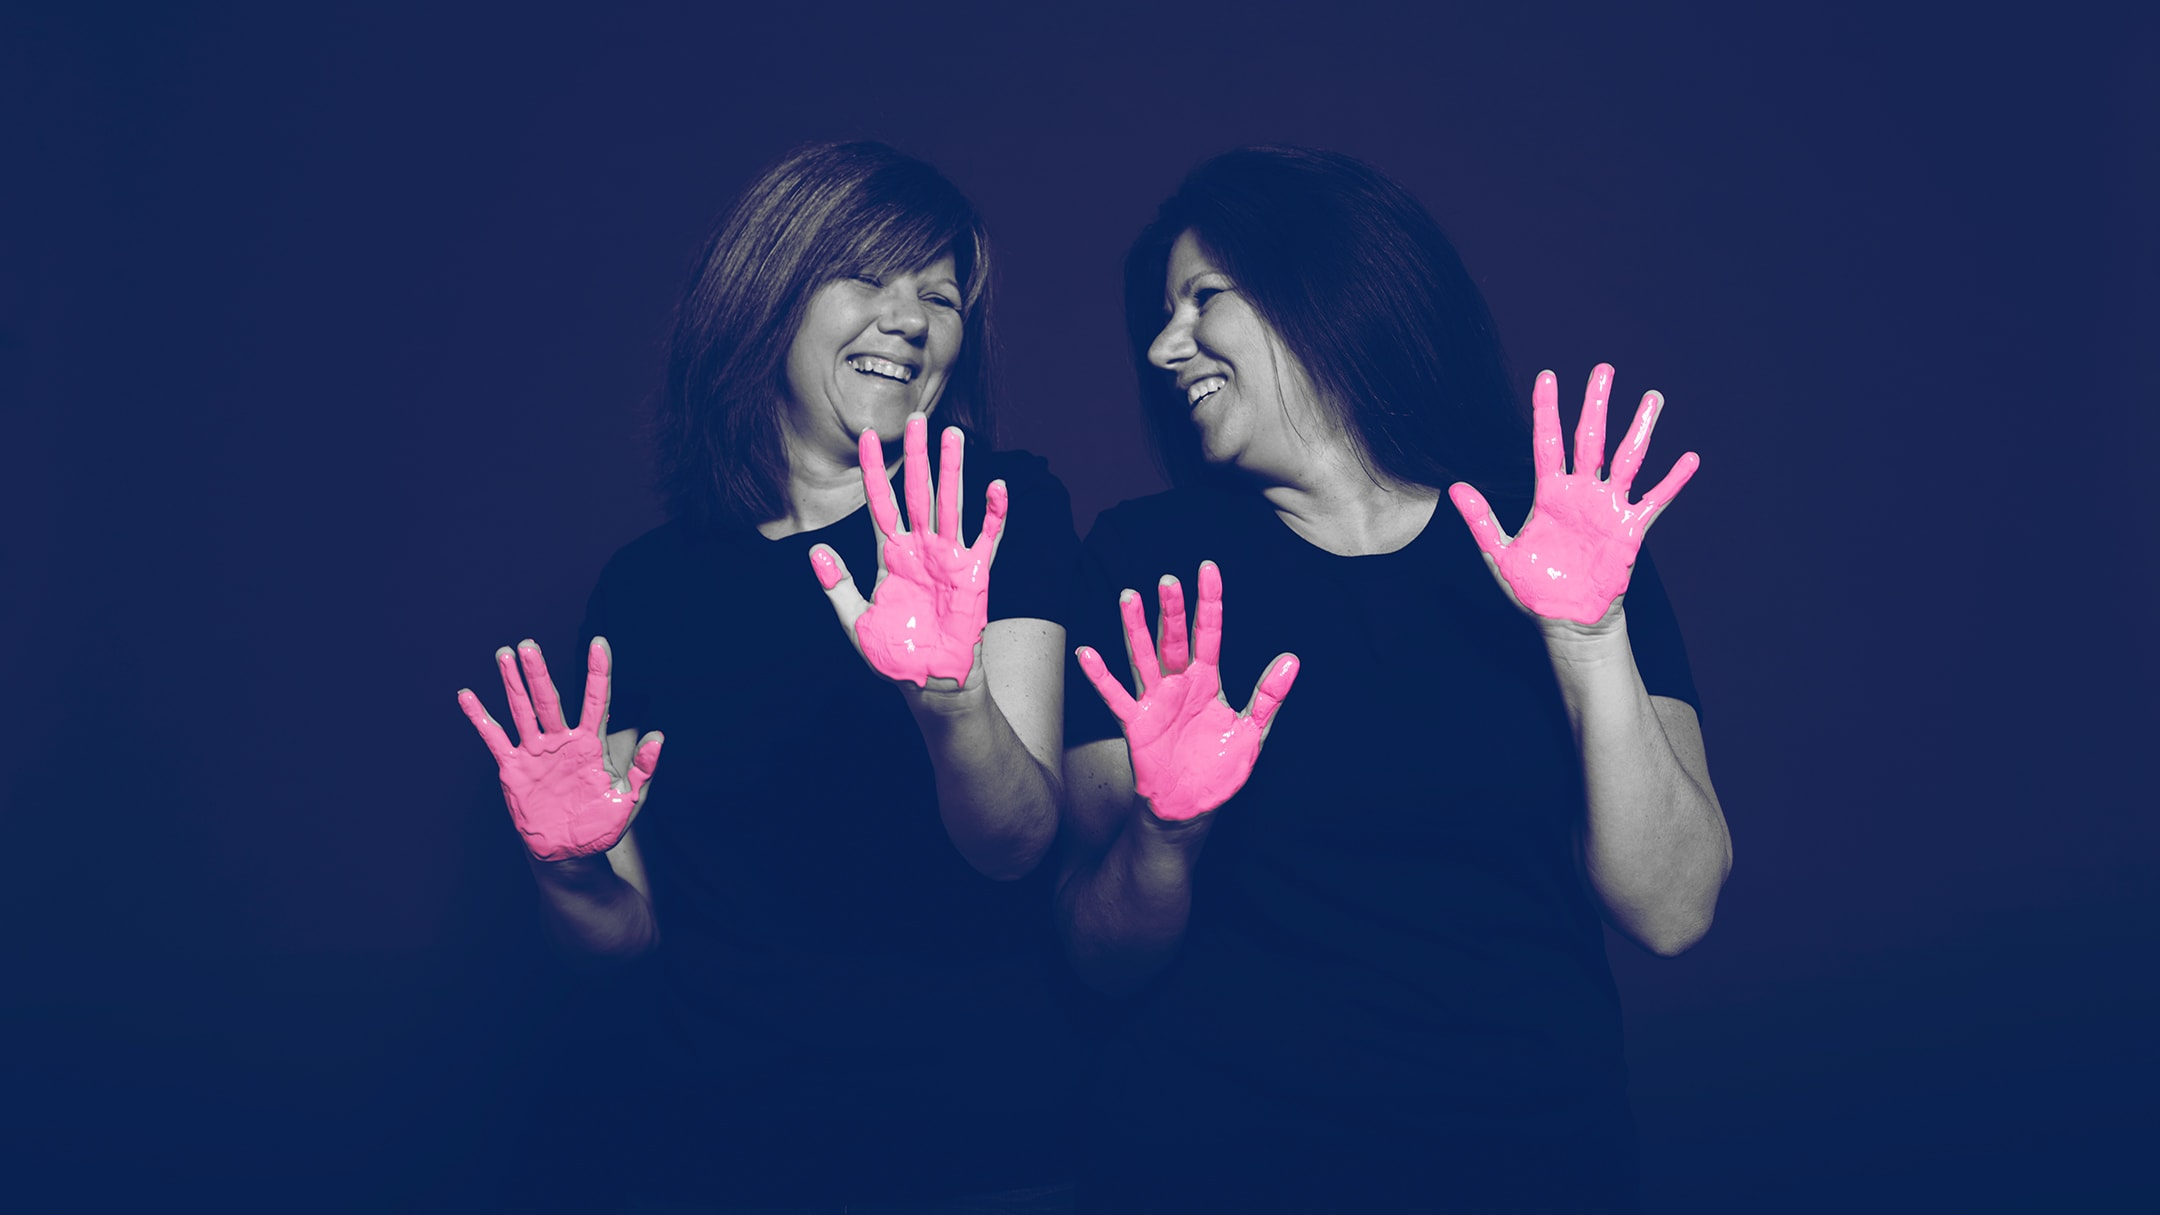 Two breast cancer survivor posing for the in our hands hospital campaign with pink paint on her hands.